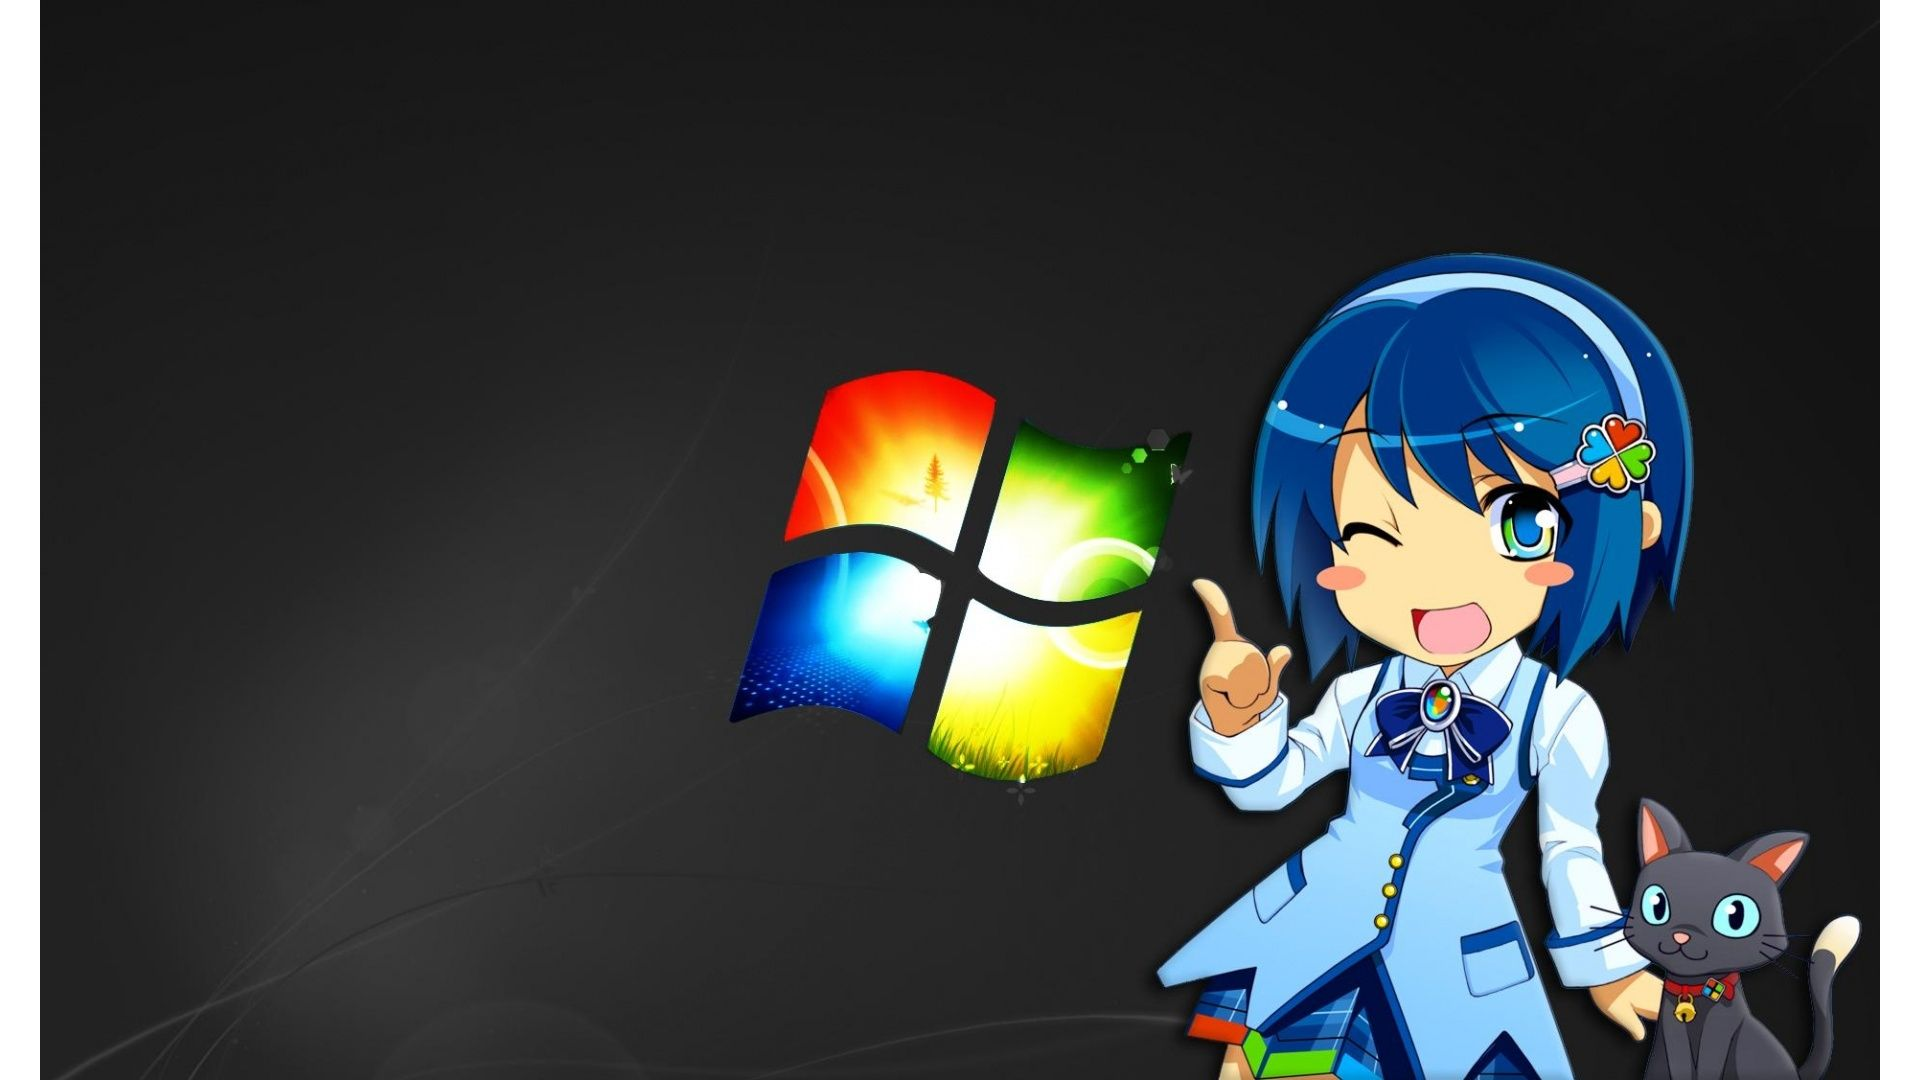 1920x1080 Awesome Animated Anime Wallpaper Windows 10 | Anime-WP